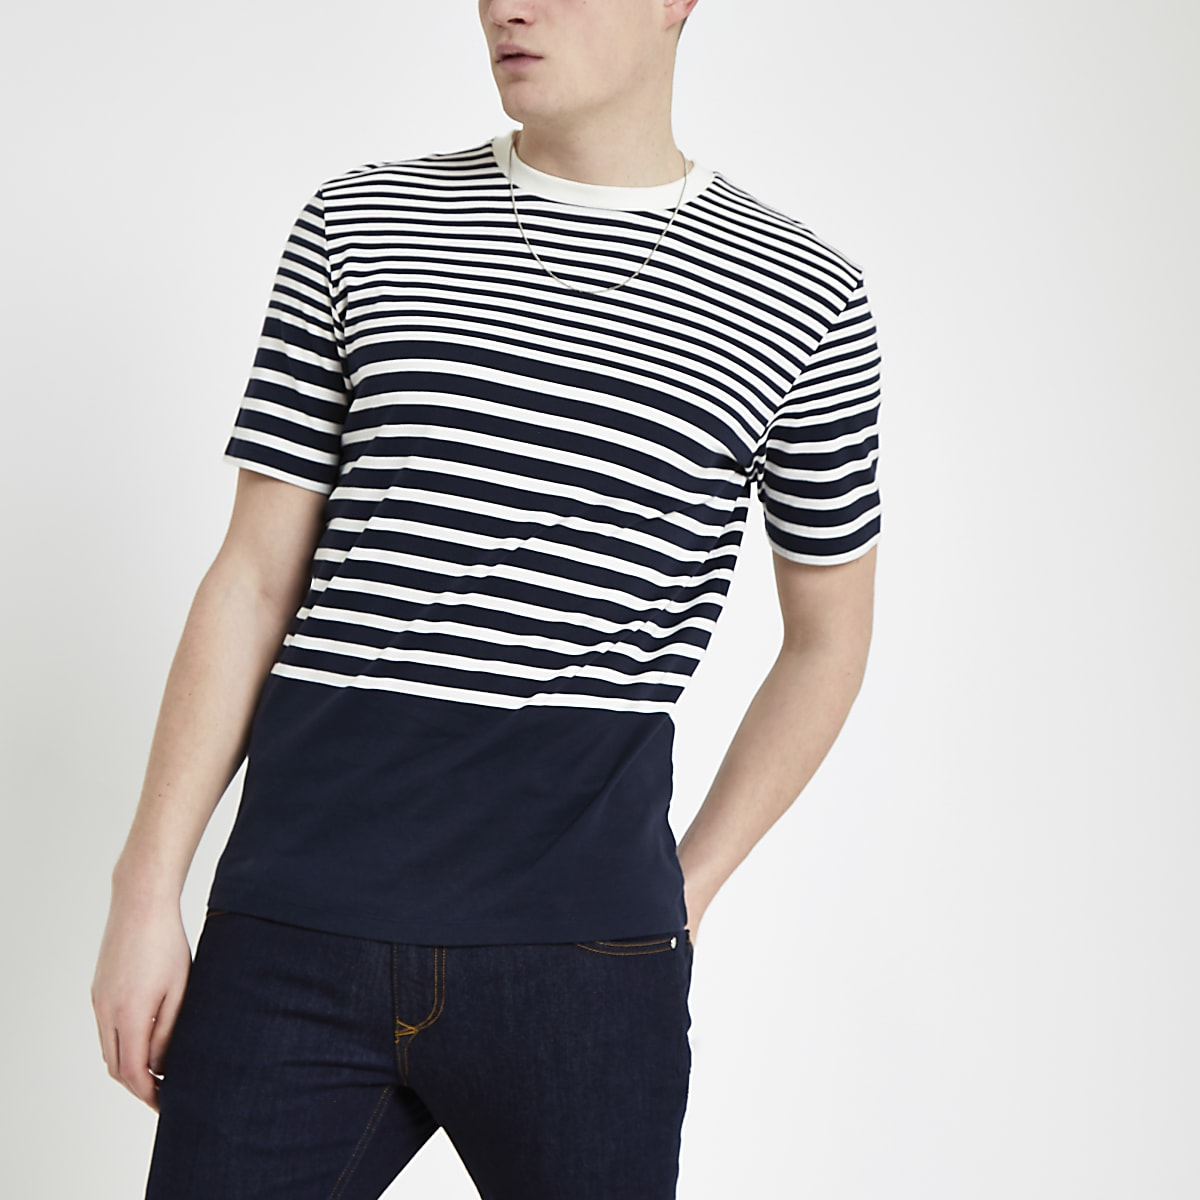 Selected Homme - Marineblauw gestreept T-shirt